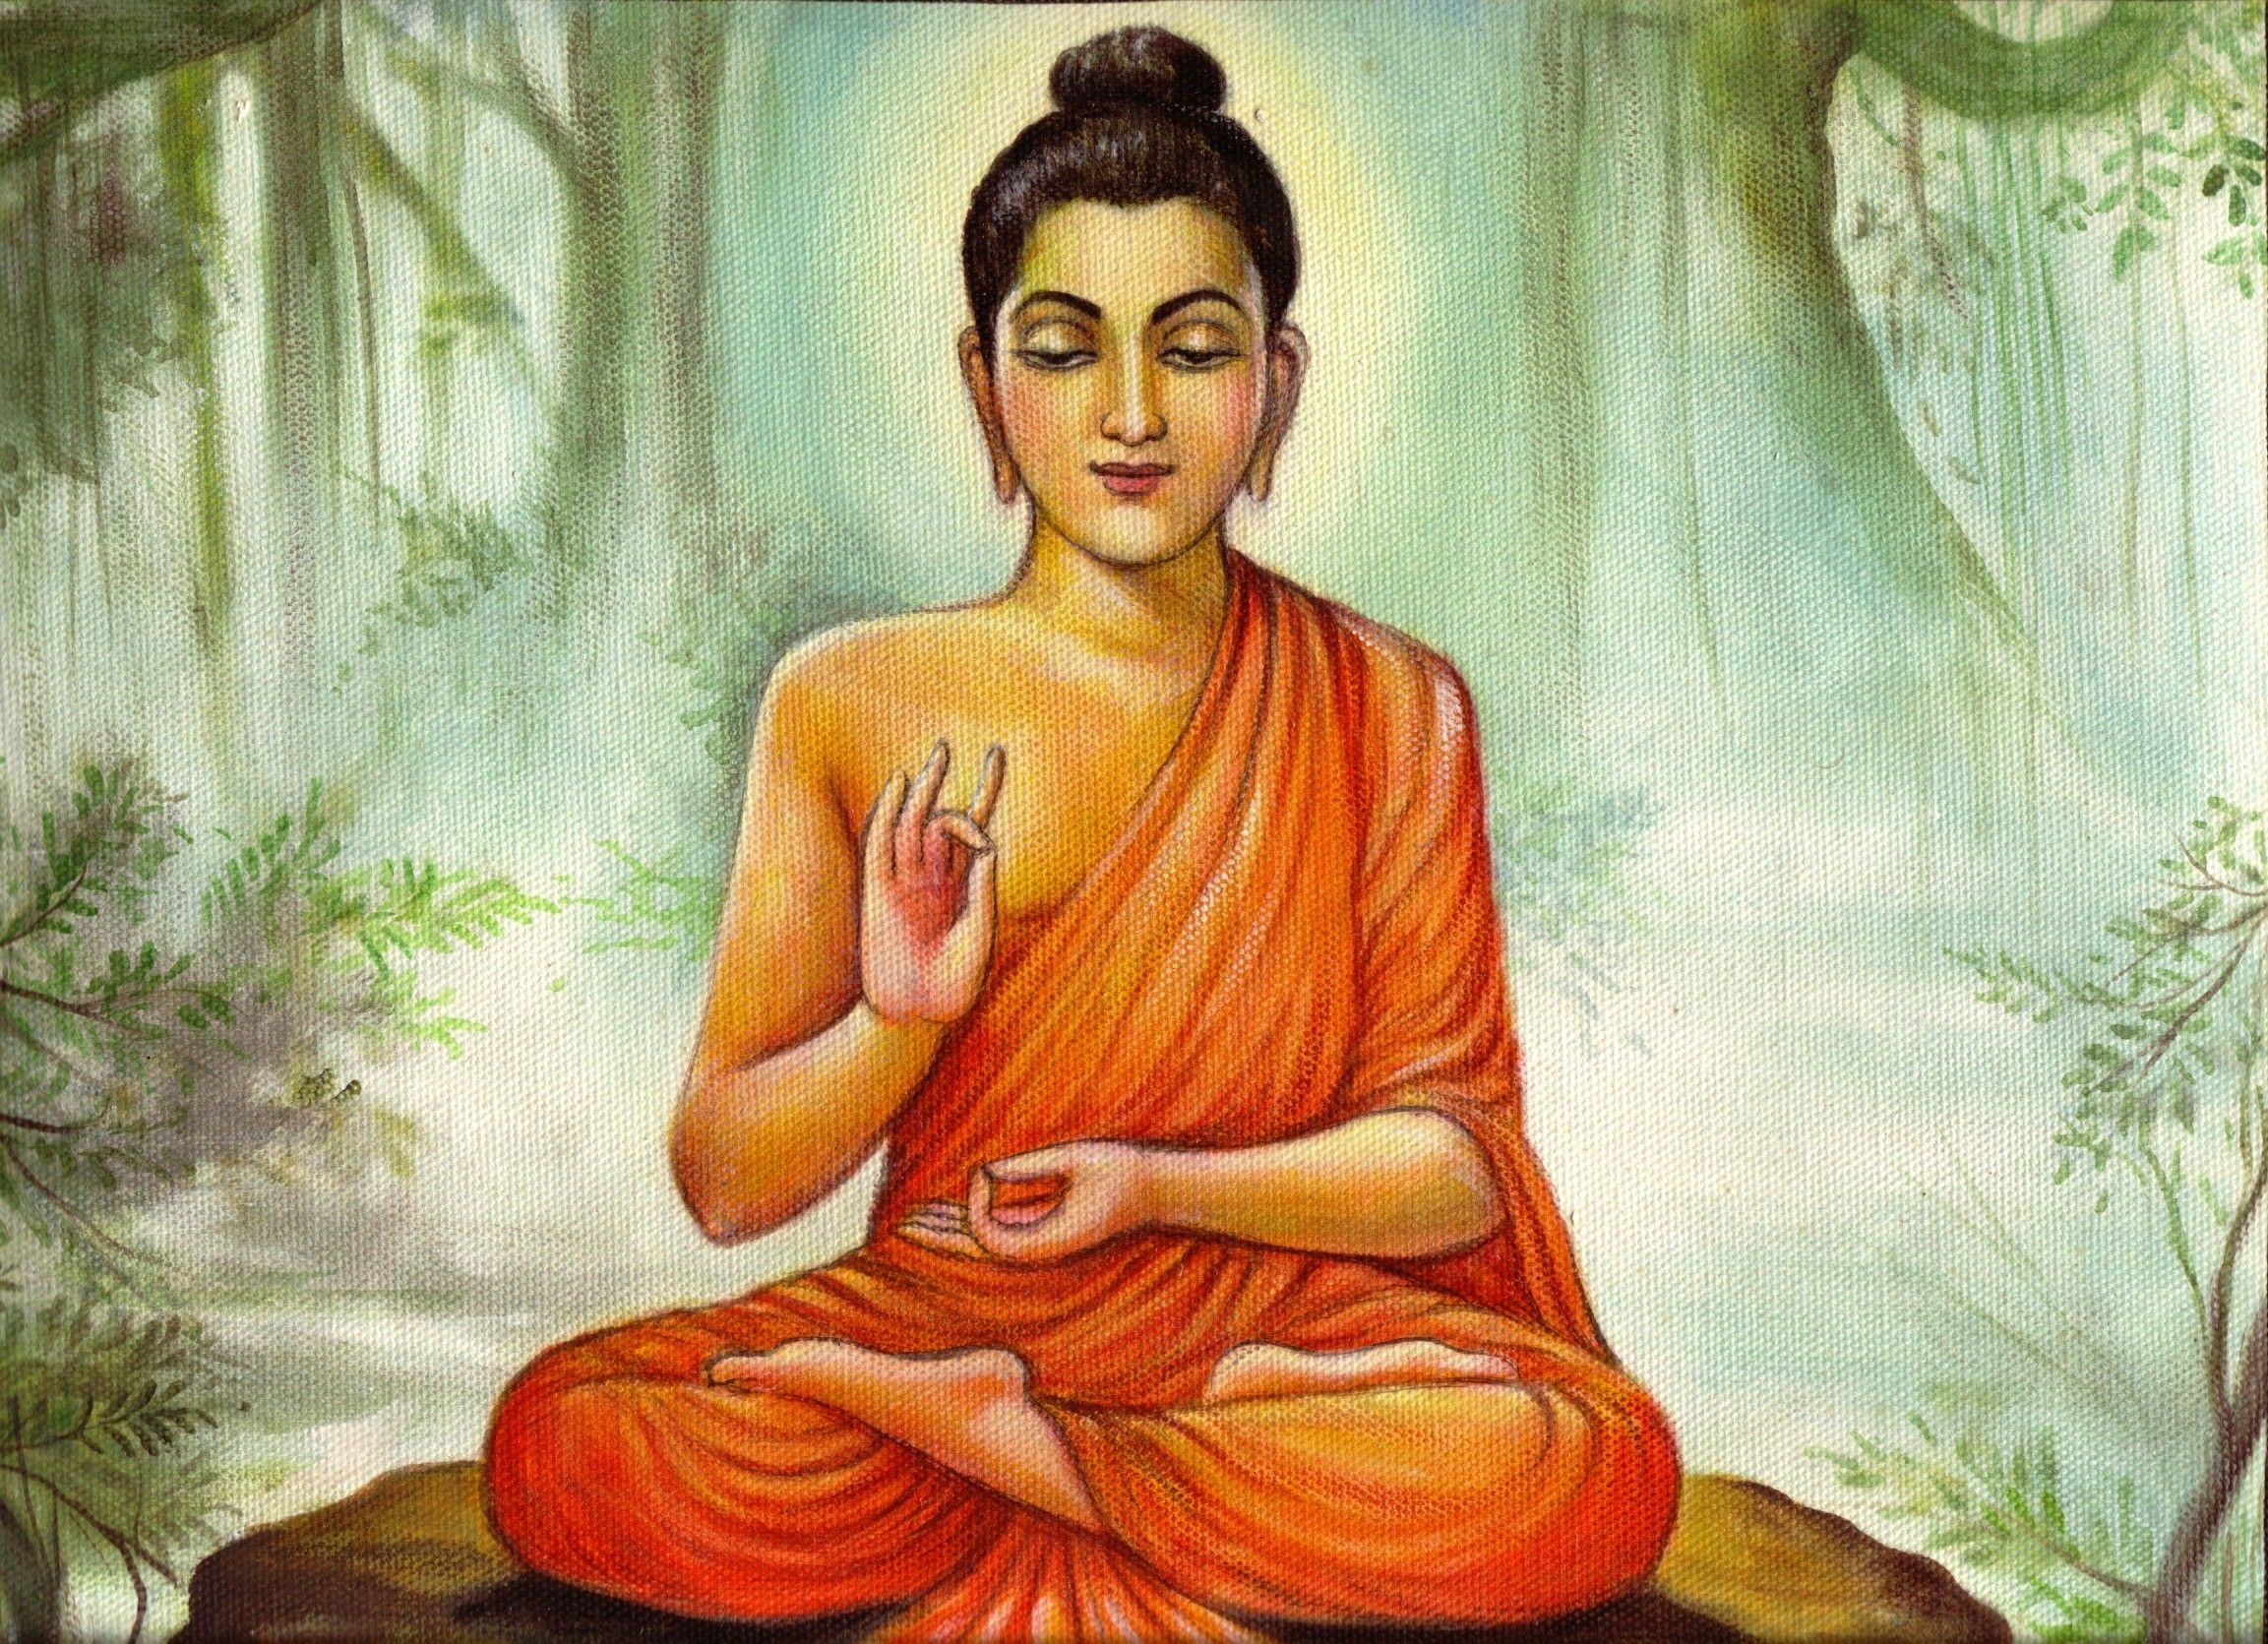 Gautam Buddha Hd Wallpapers Images Pictures Photos Download Buddha Image Buddha Art Lord Buddha Wallpapers